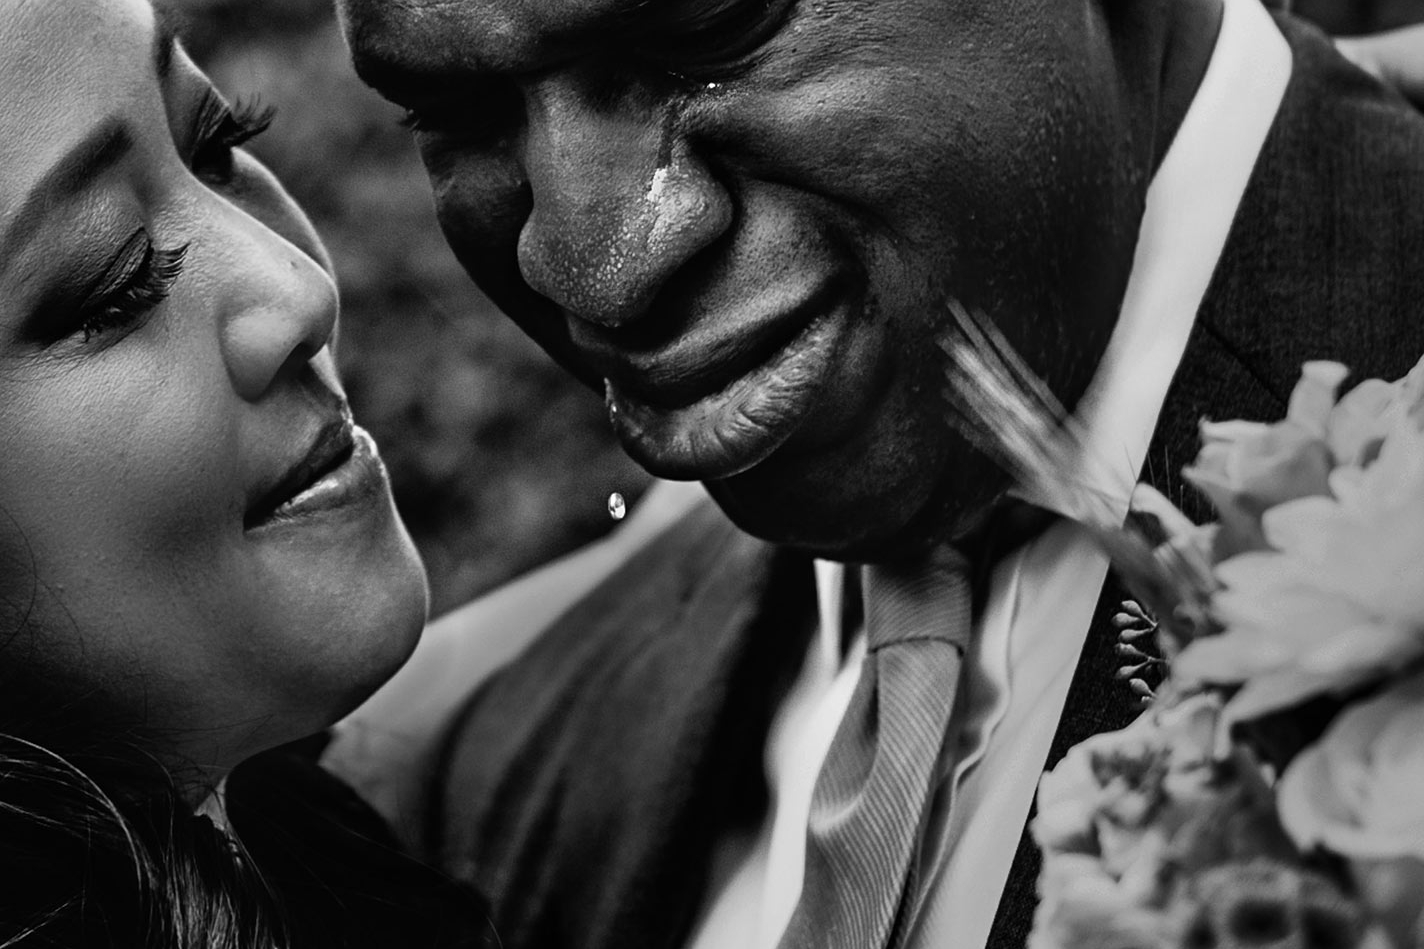 Emotional Los Angeles wedding moment of African-American groom crying